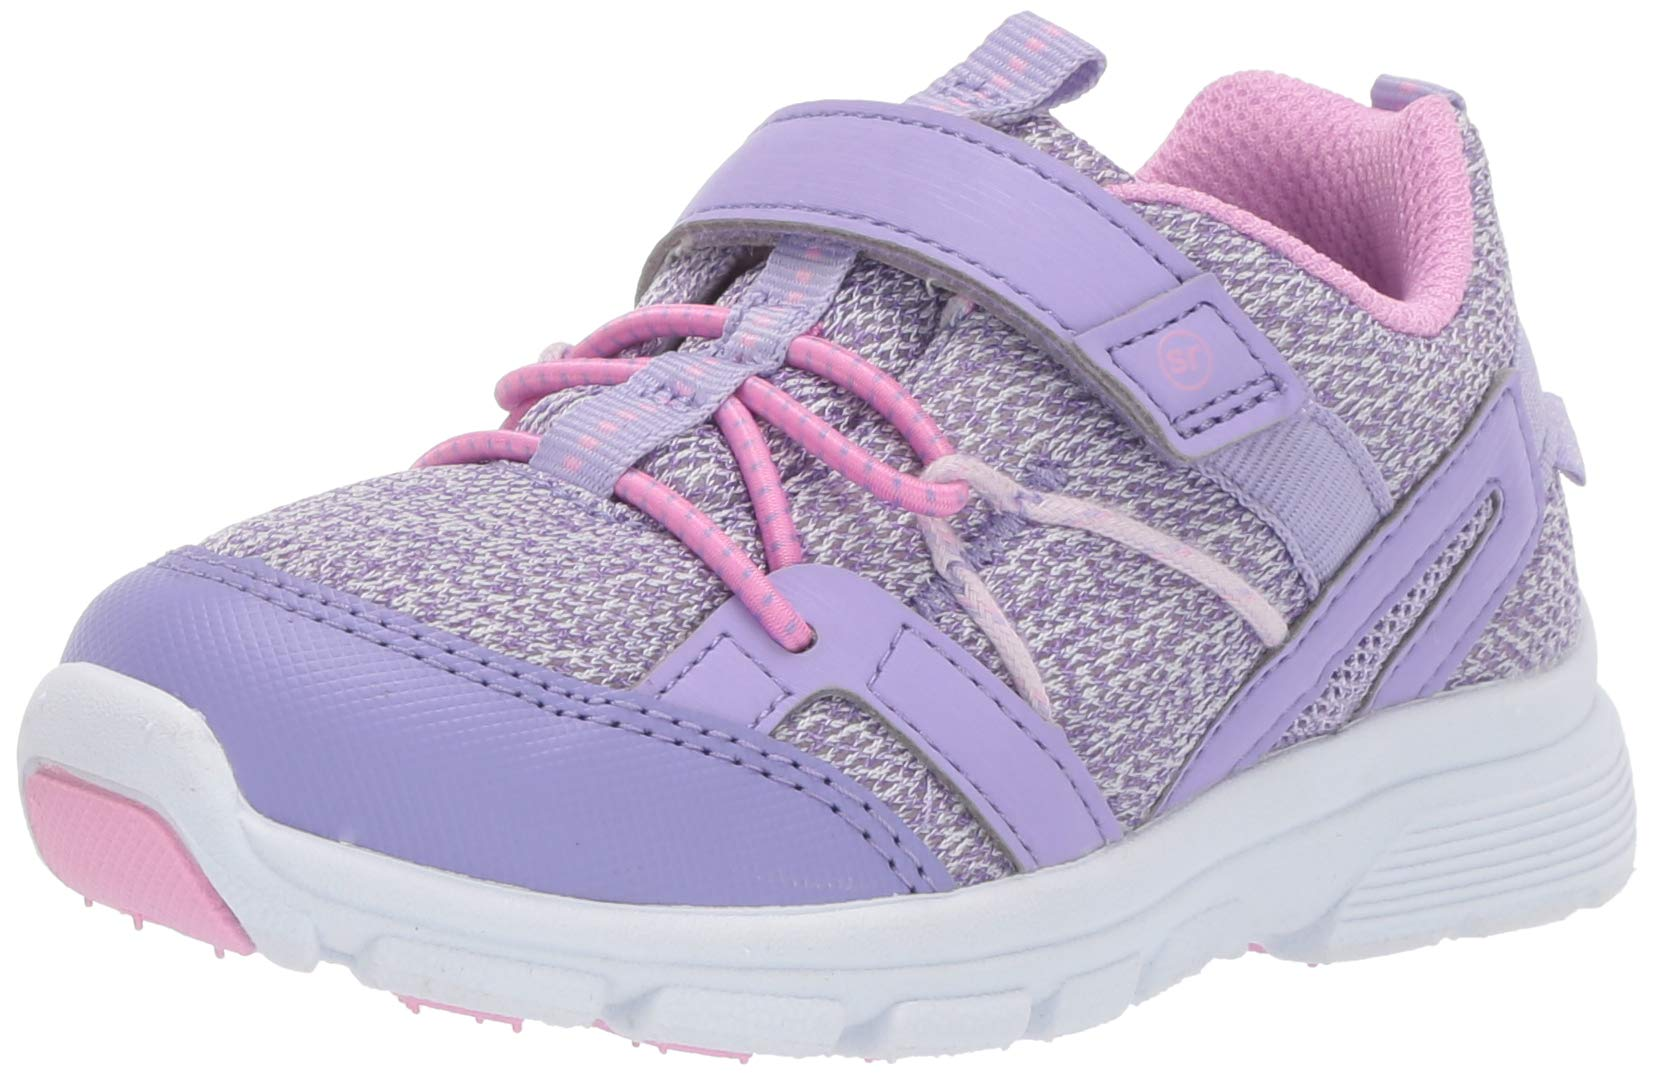 Stride Rite Ocean Girl's and Boy's Machine Washable Athletic Sneaker, Purple, 6 M US Toddler